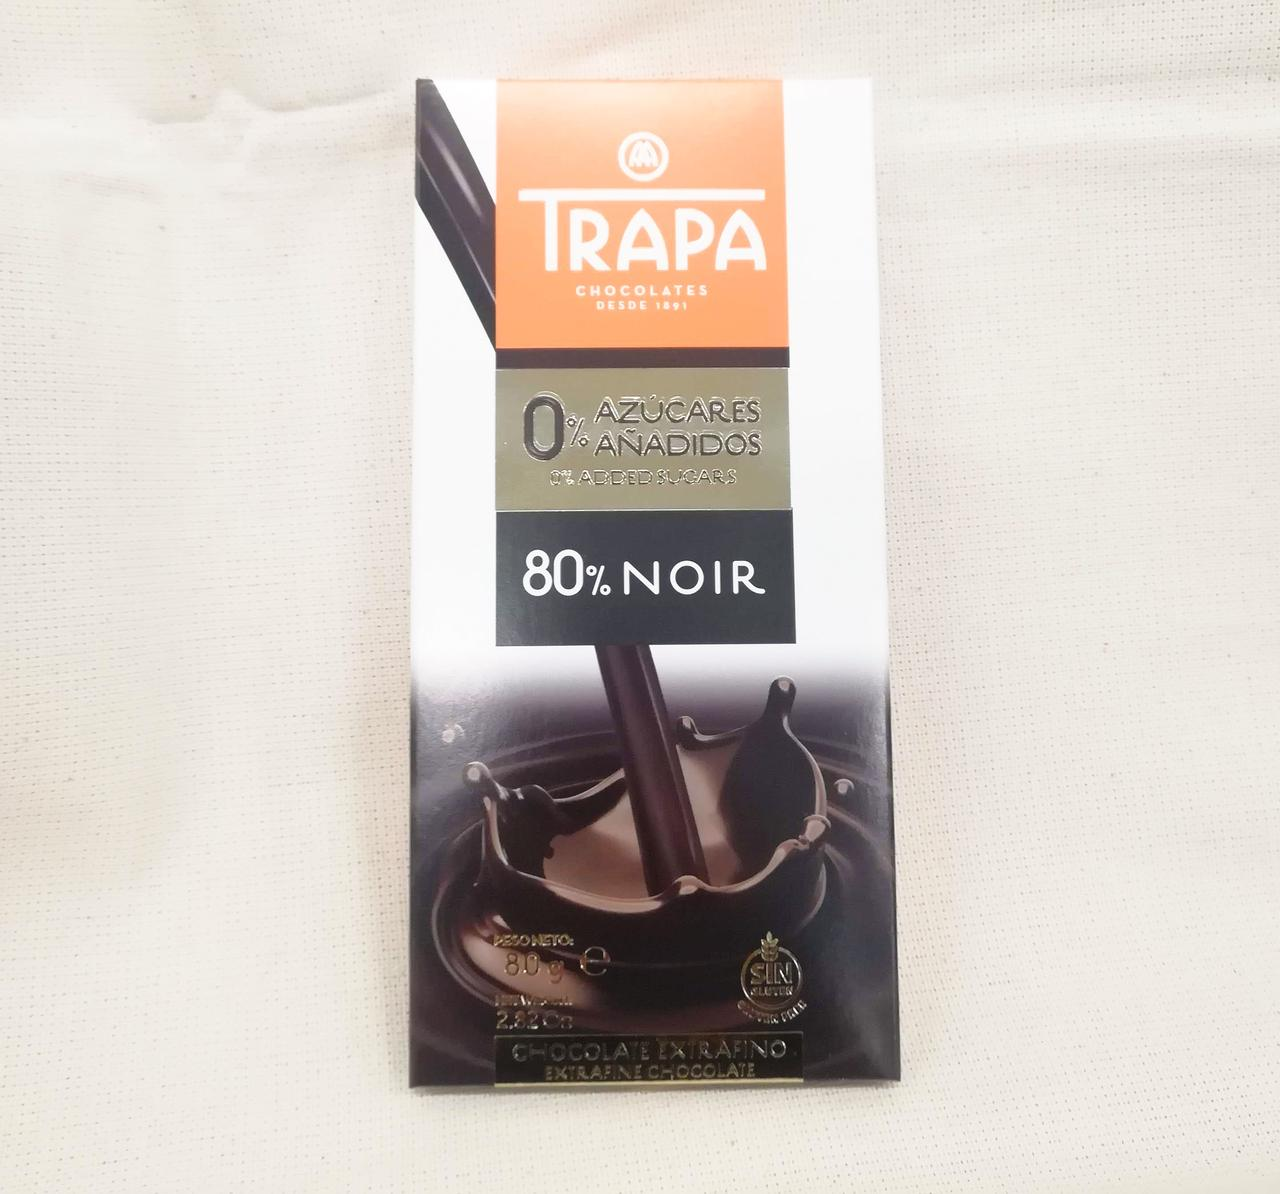 Trapa Intenso 80% Noir Sugarfree